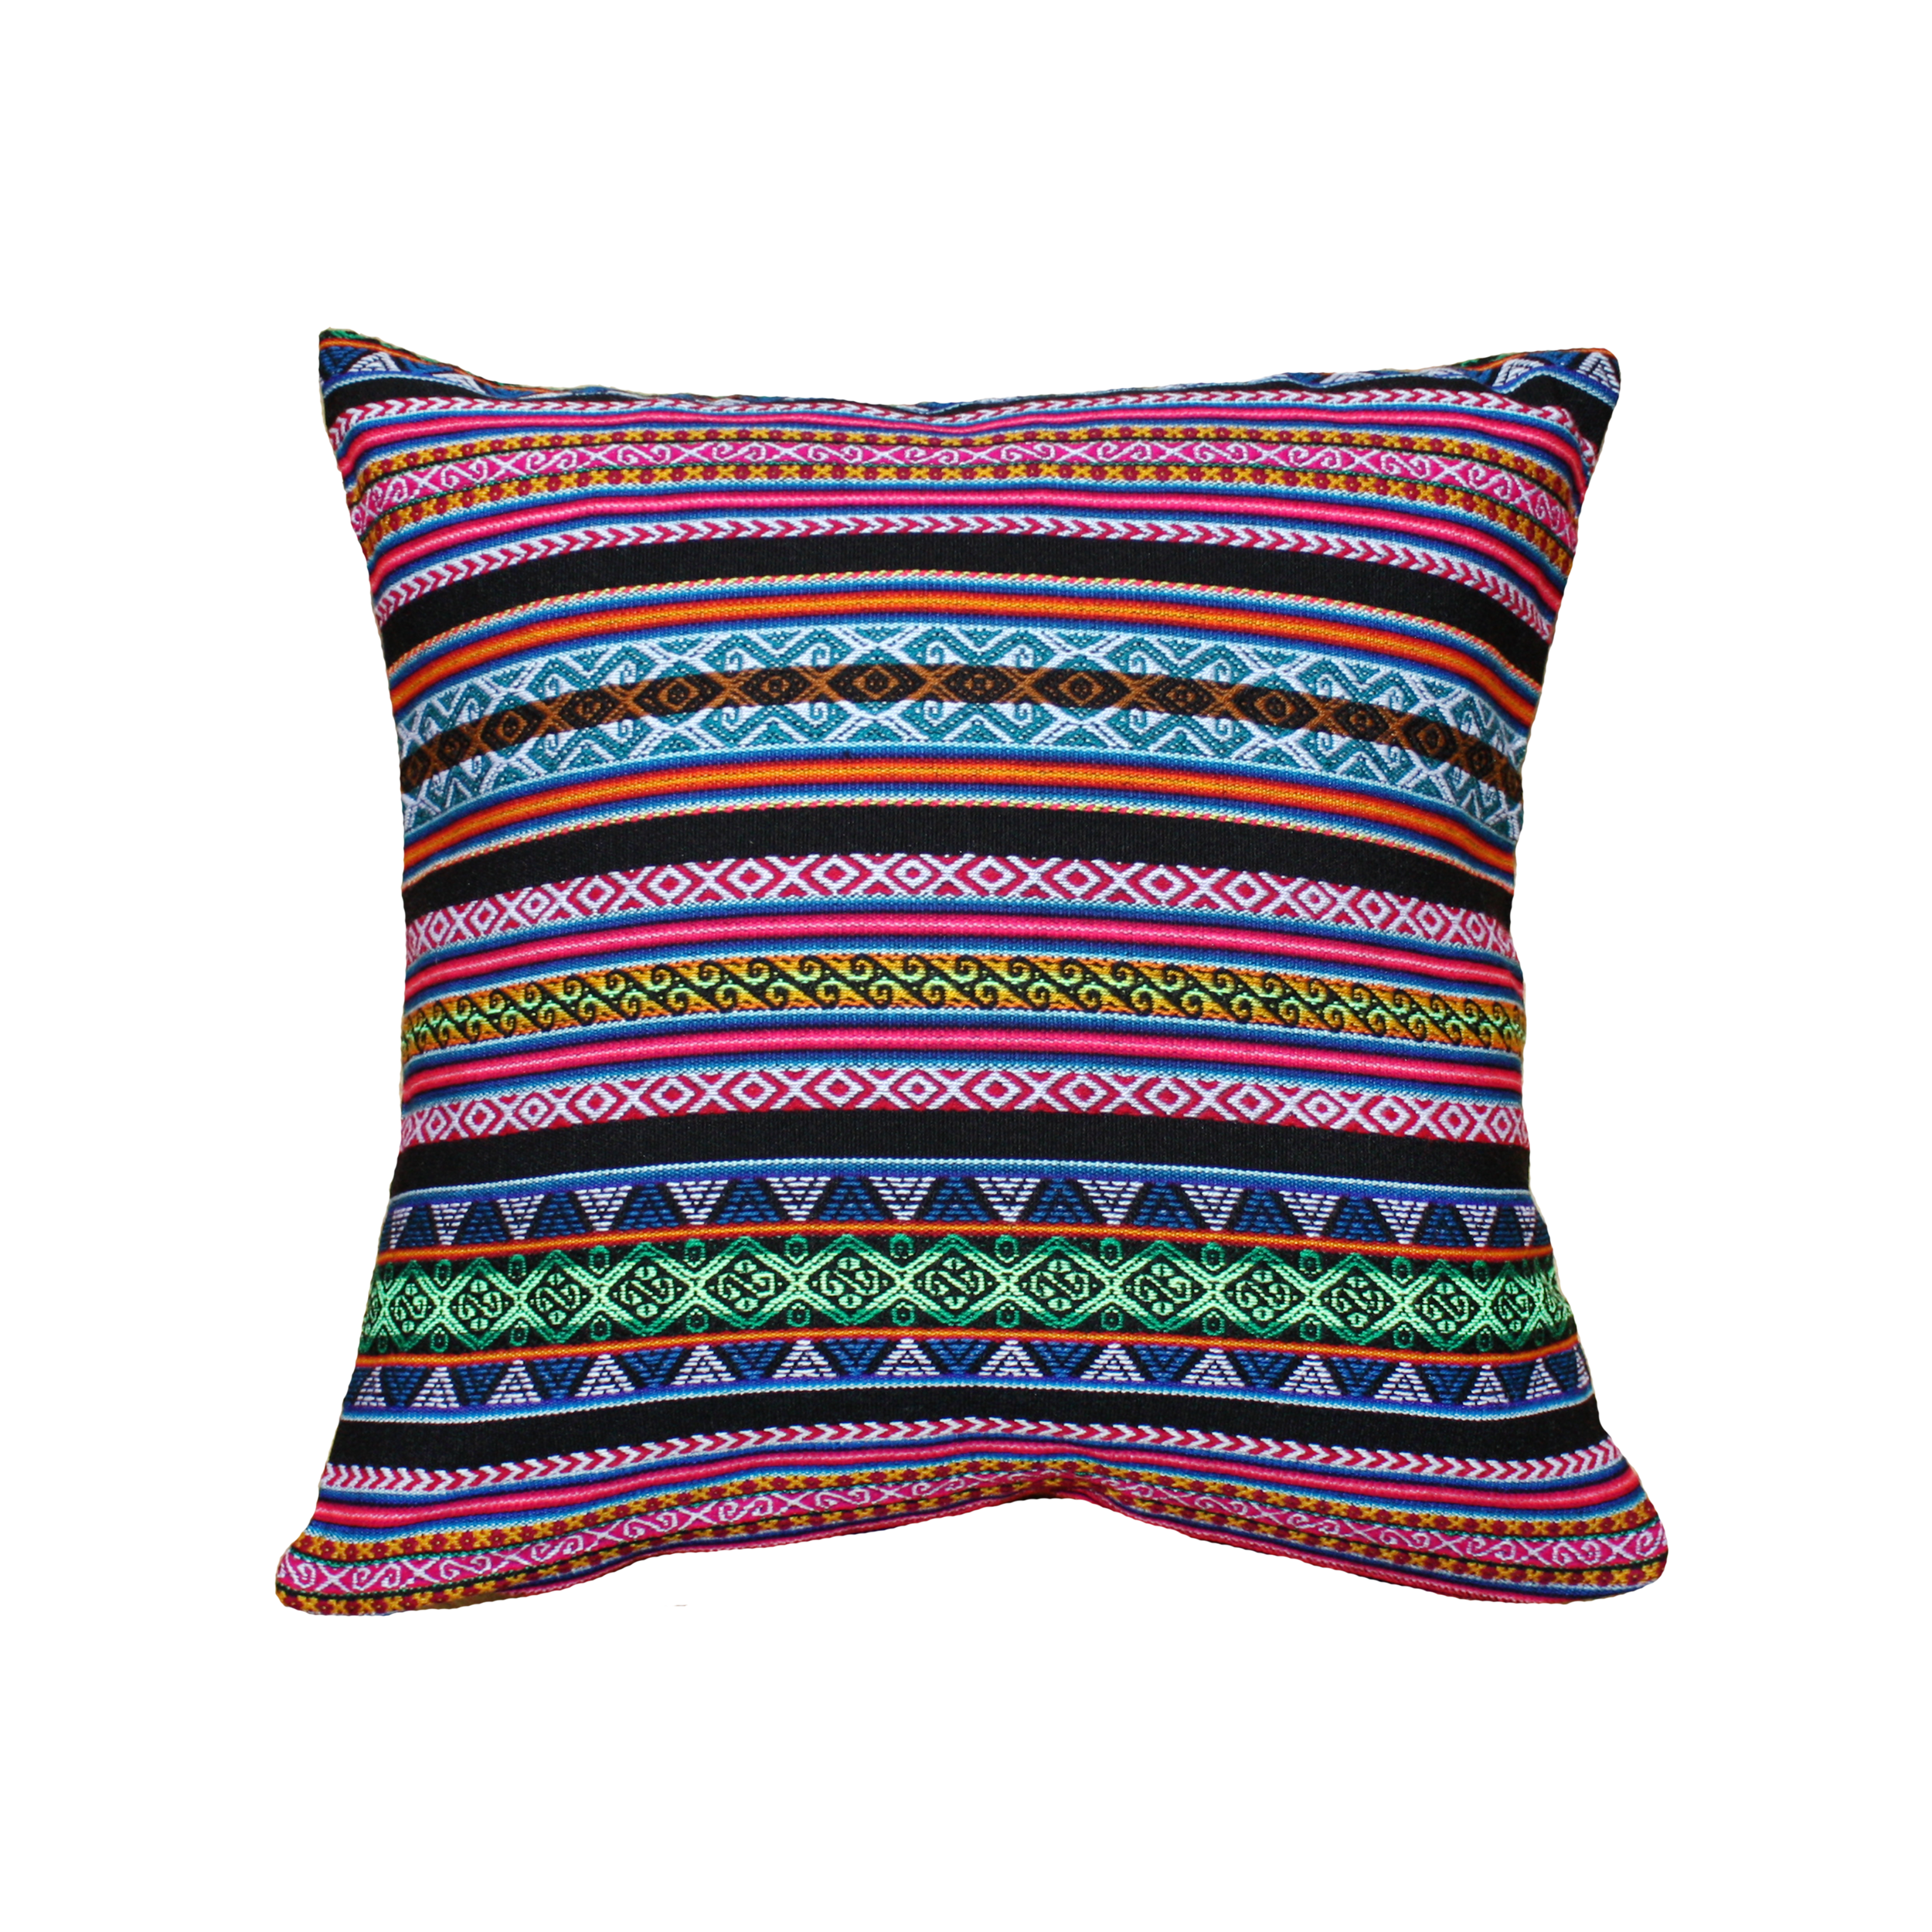 COUSSIN CARRE5.png